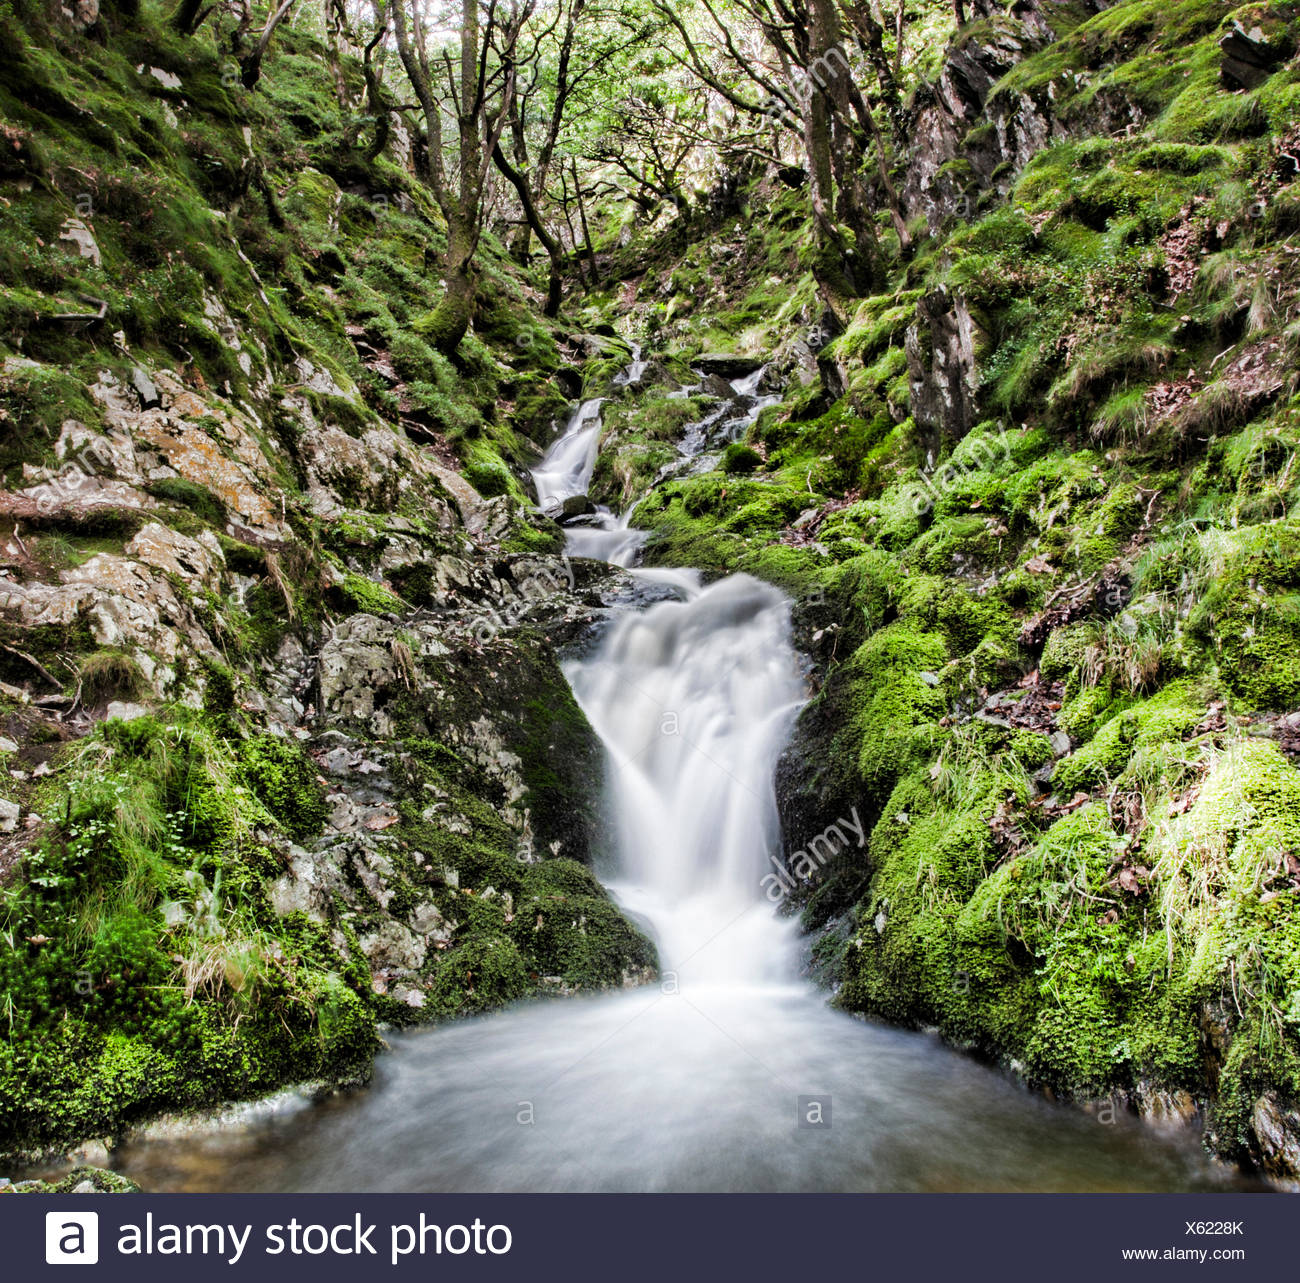 Flowing river - Stock Image